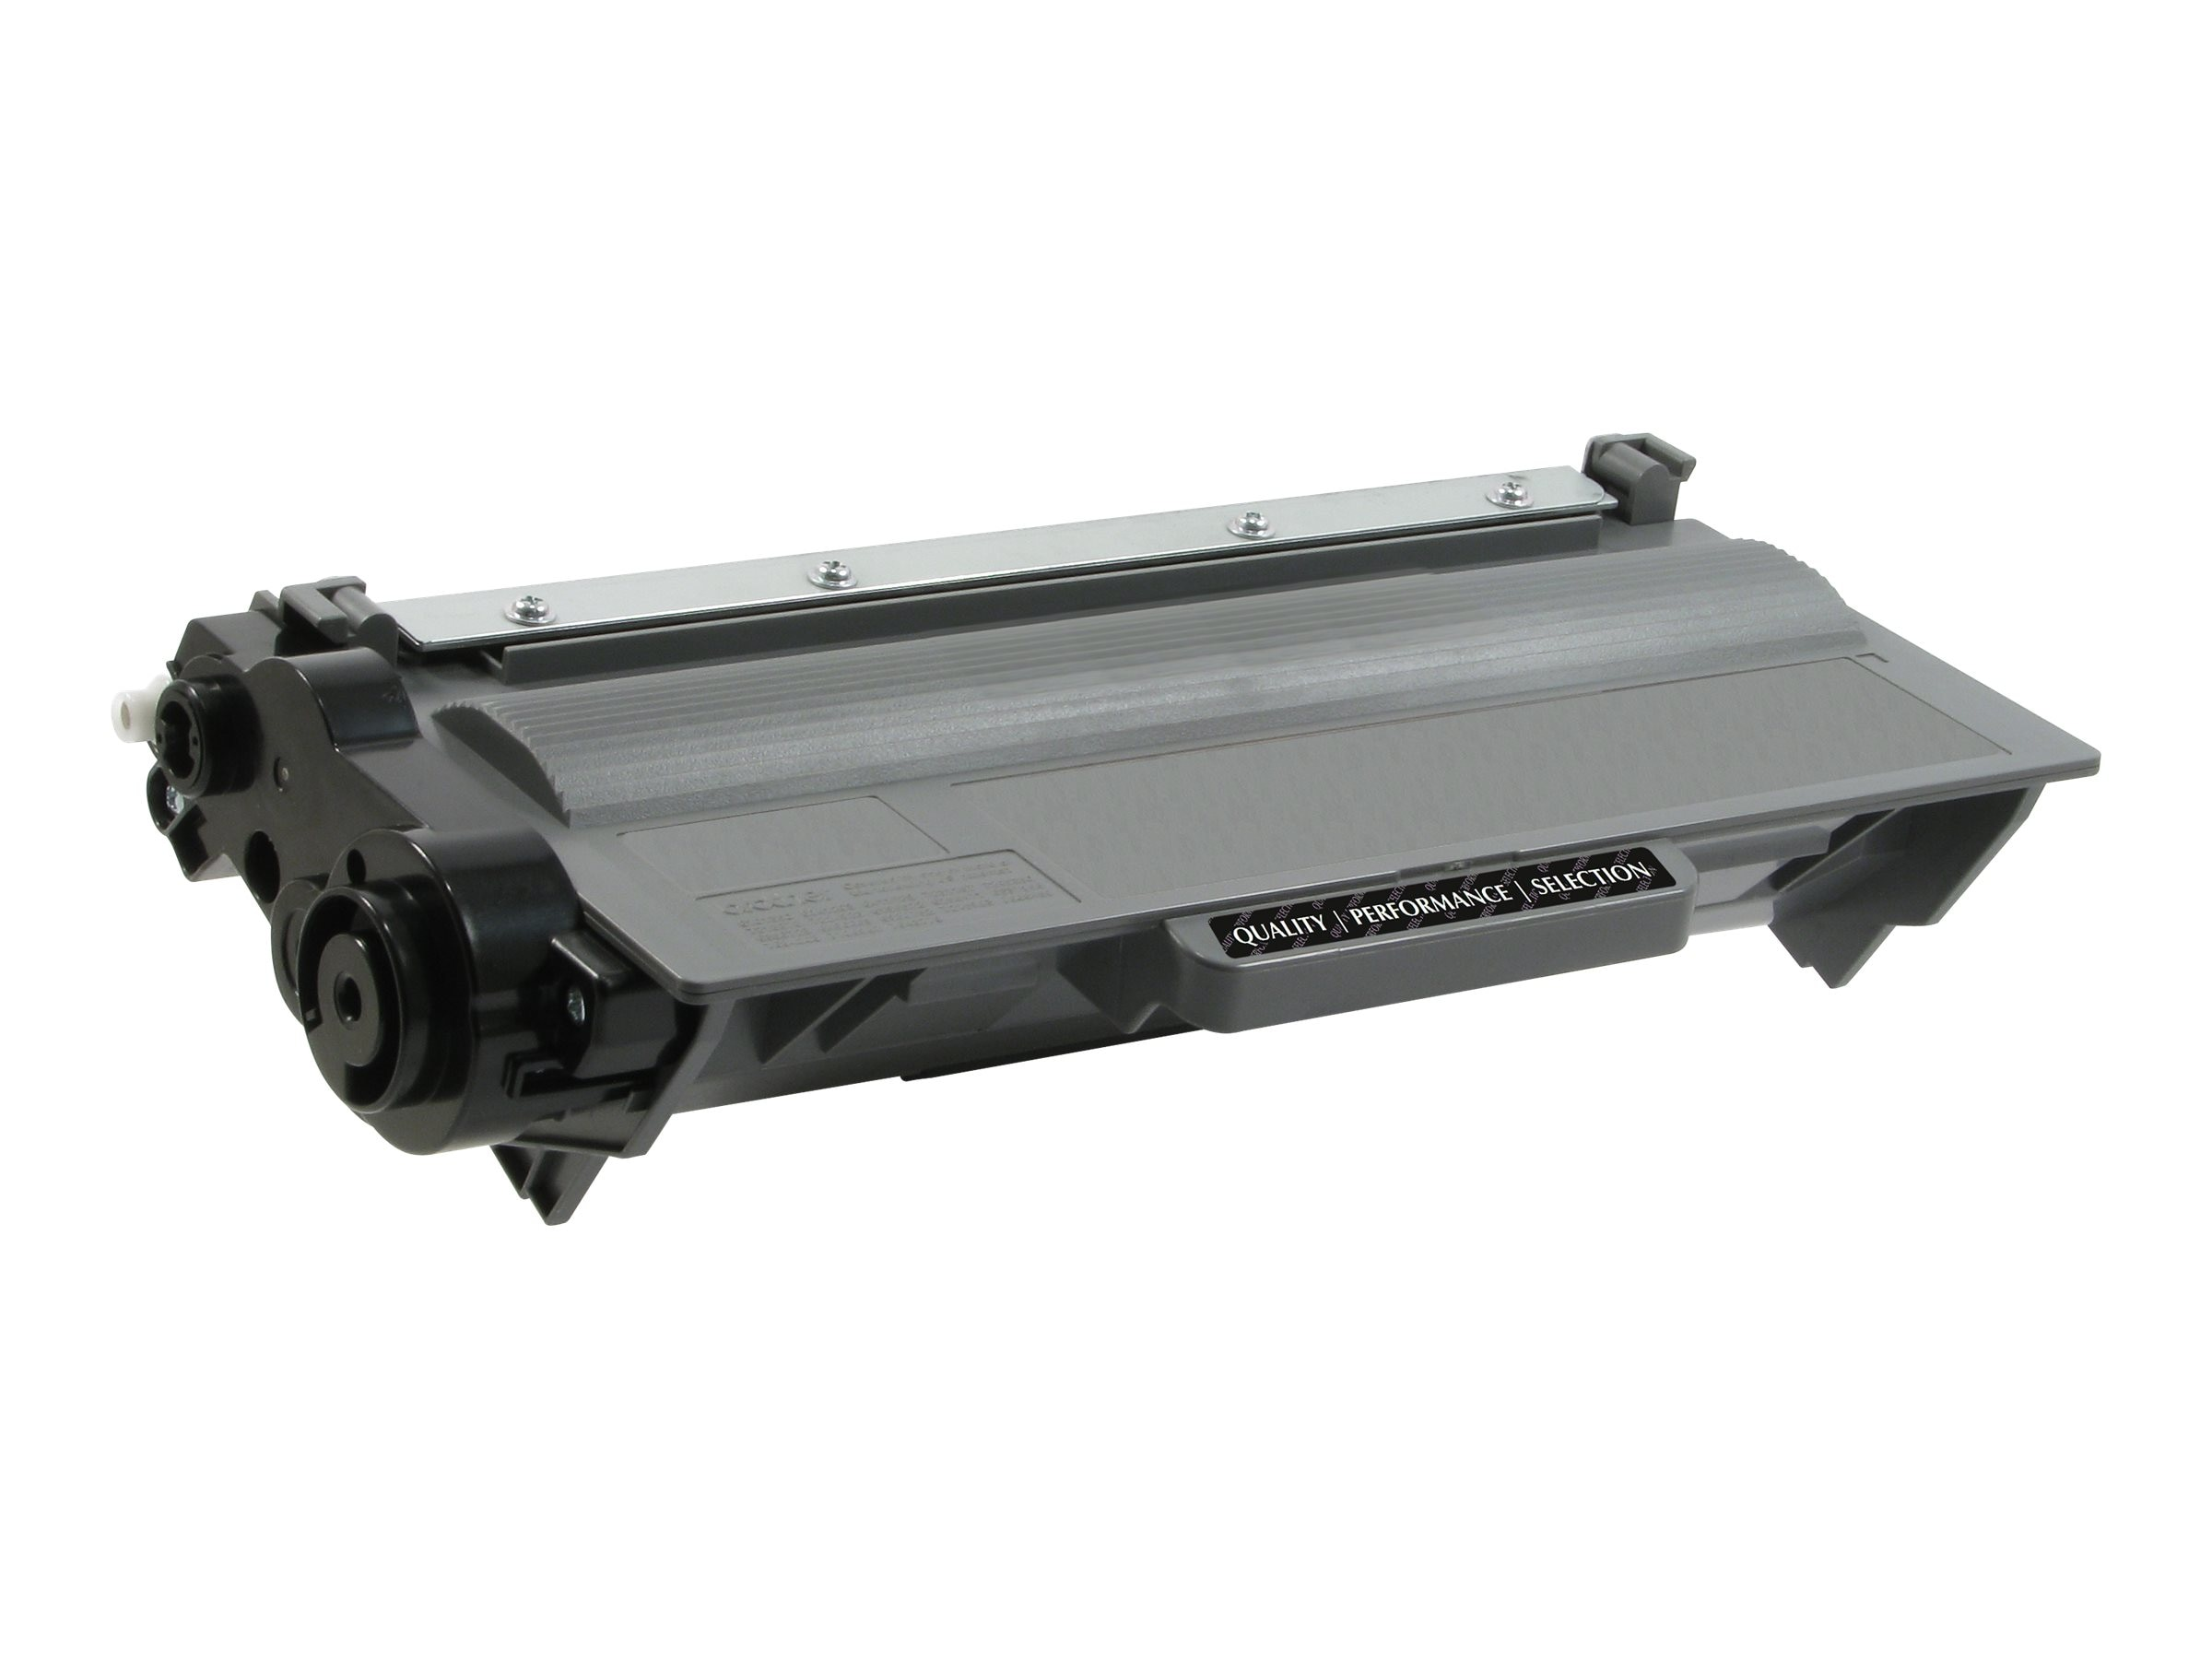 V7 TN750 Black High Yield Replacement Toner Cartridge for Br0ther, V7TN750, 17341565, Toner and Imaging Components